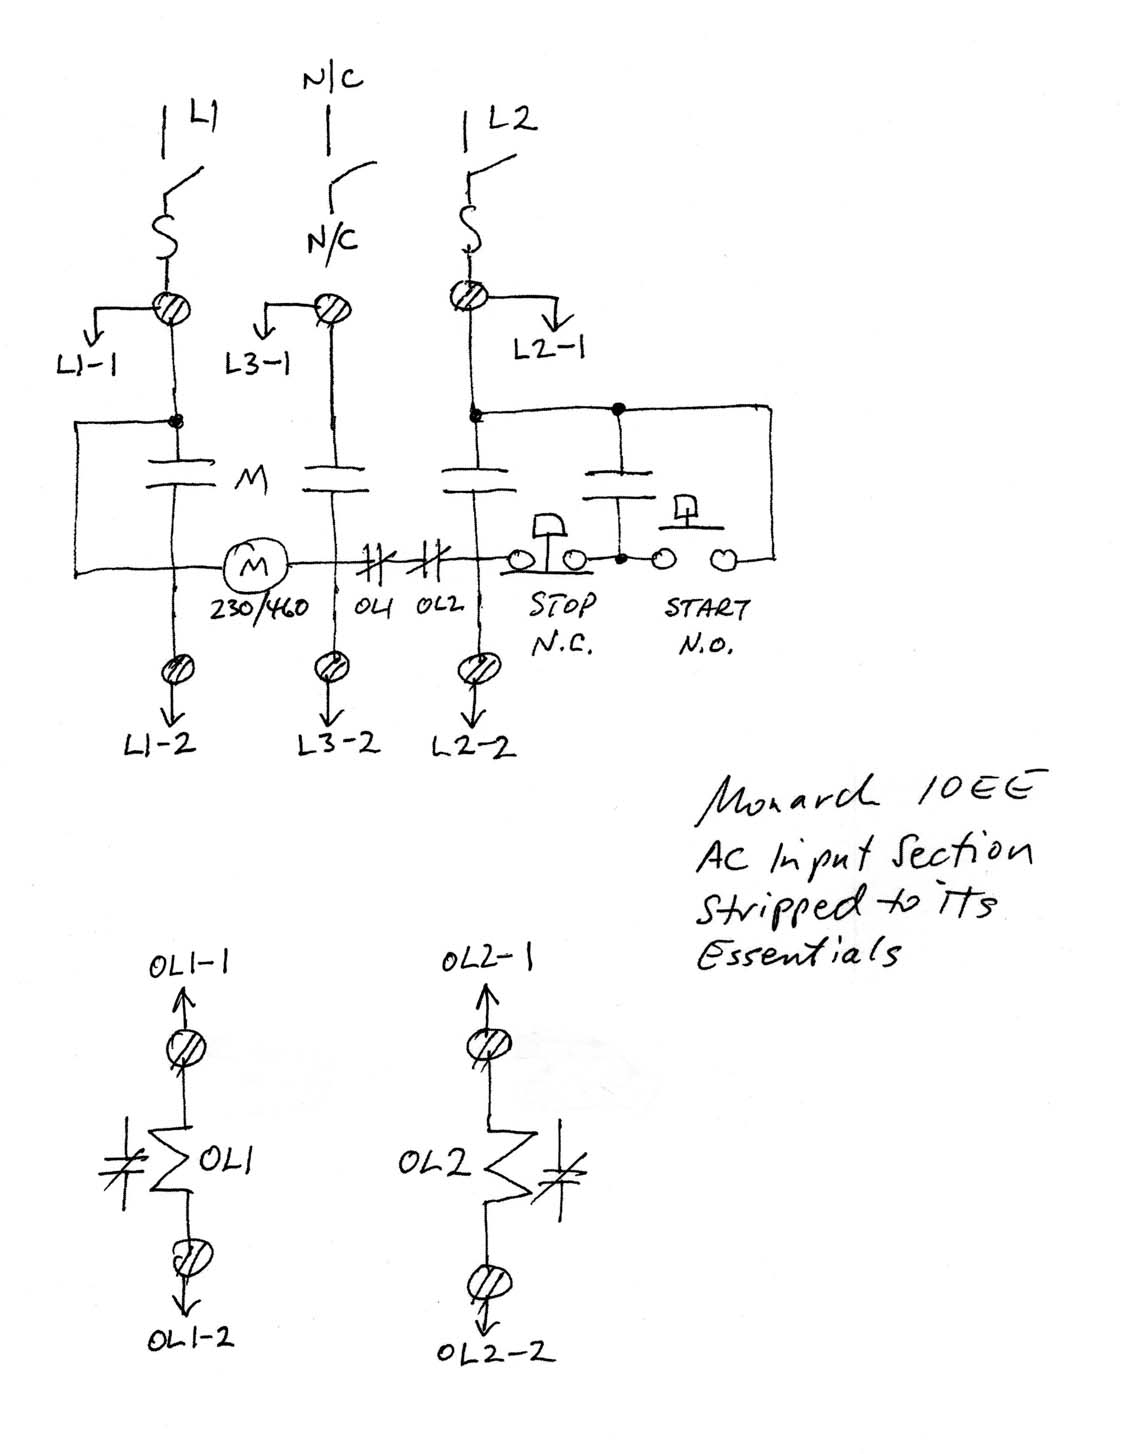 single phase capacitor start induction motor connection wiring diagram ford 460 distributor power for generator 10ees